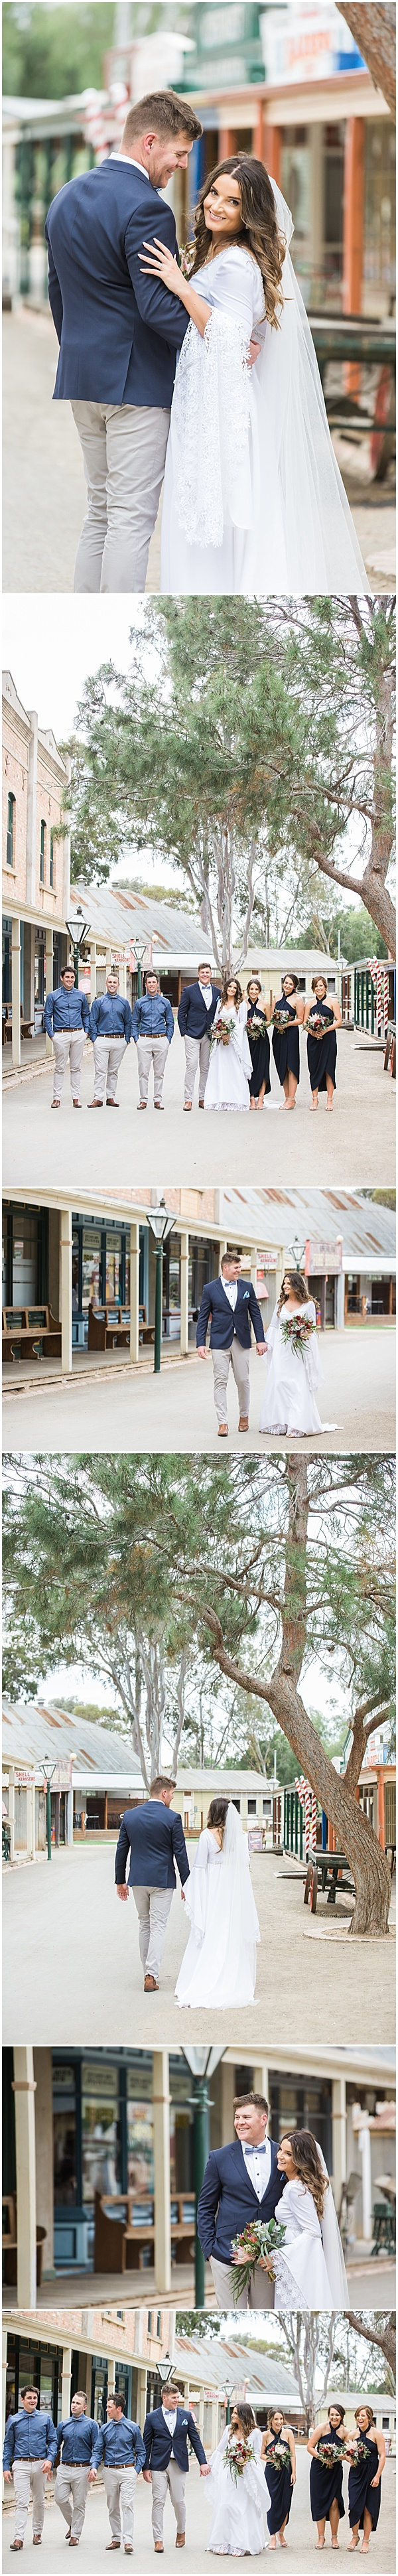 Bendigo Wedding Photographer_0011